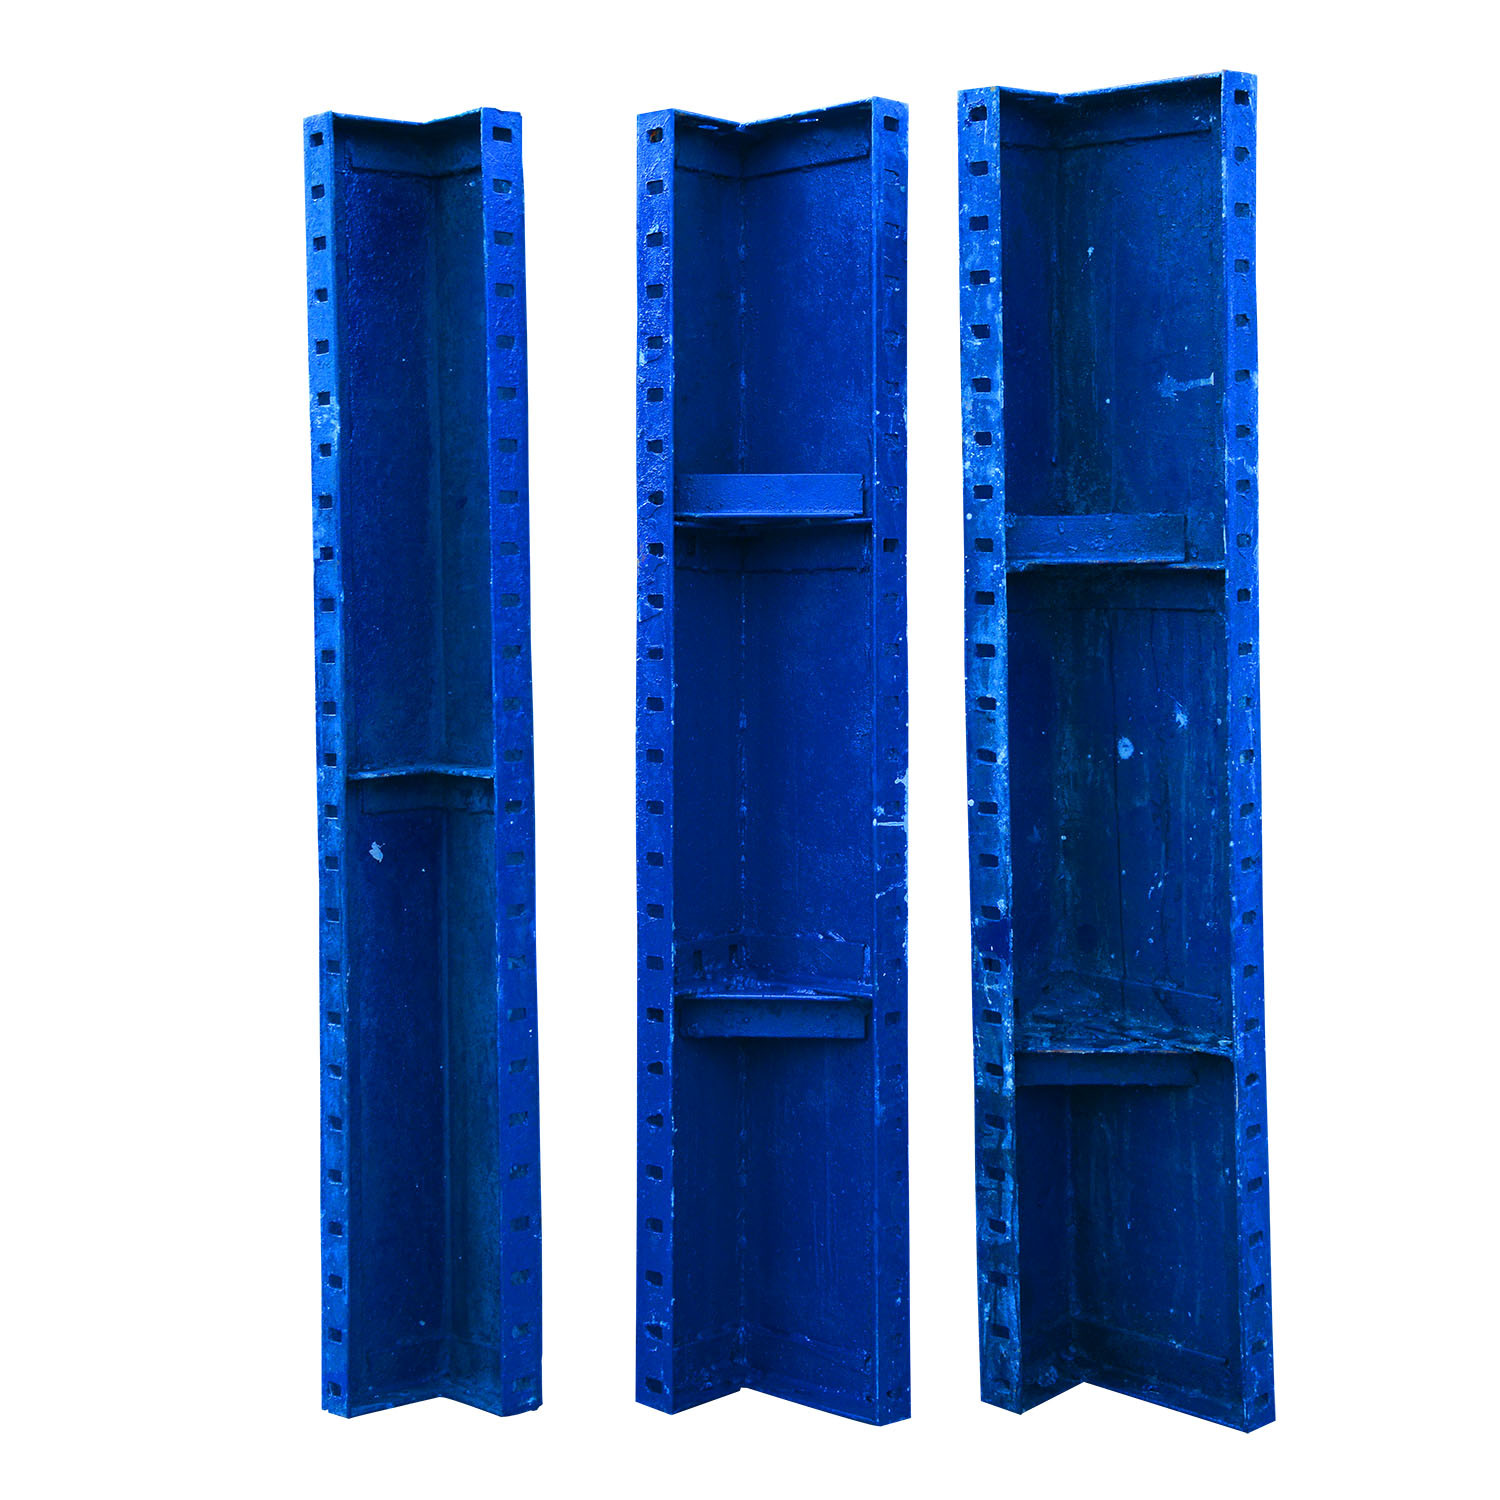 ACRO PLATE WALL FORM